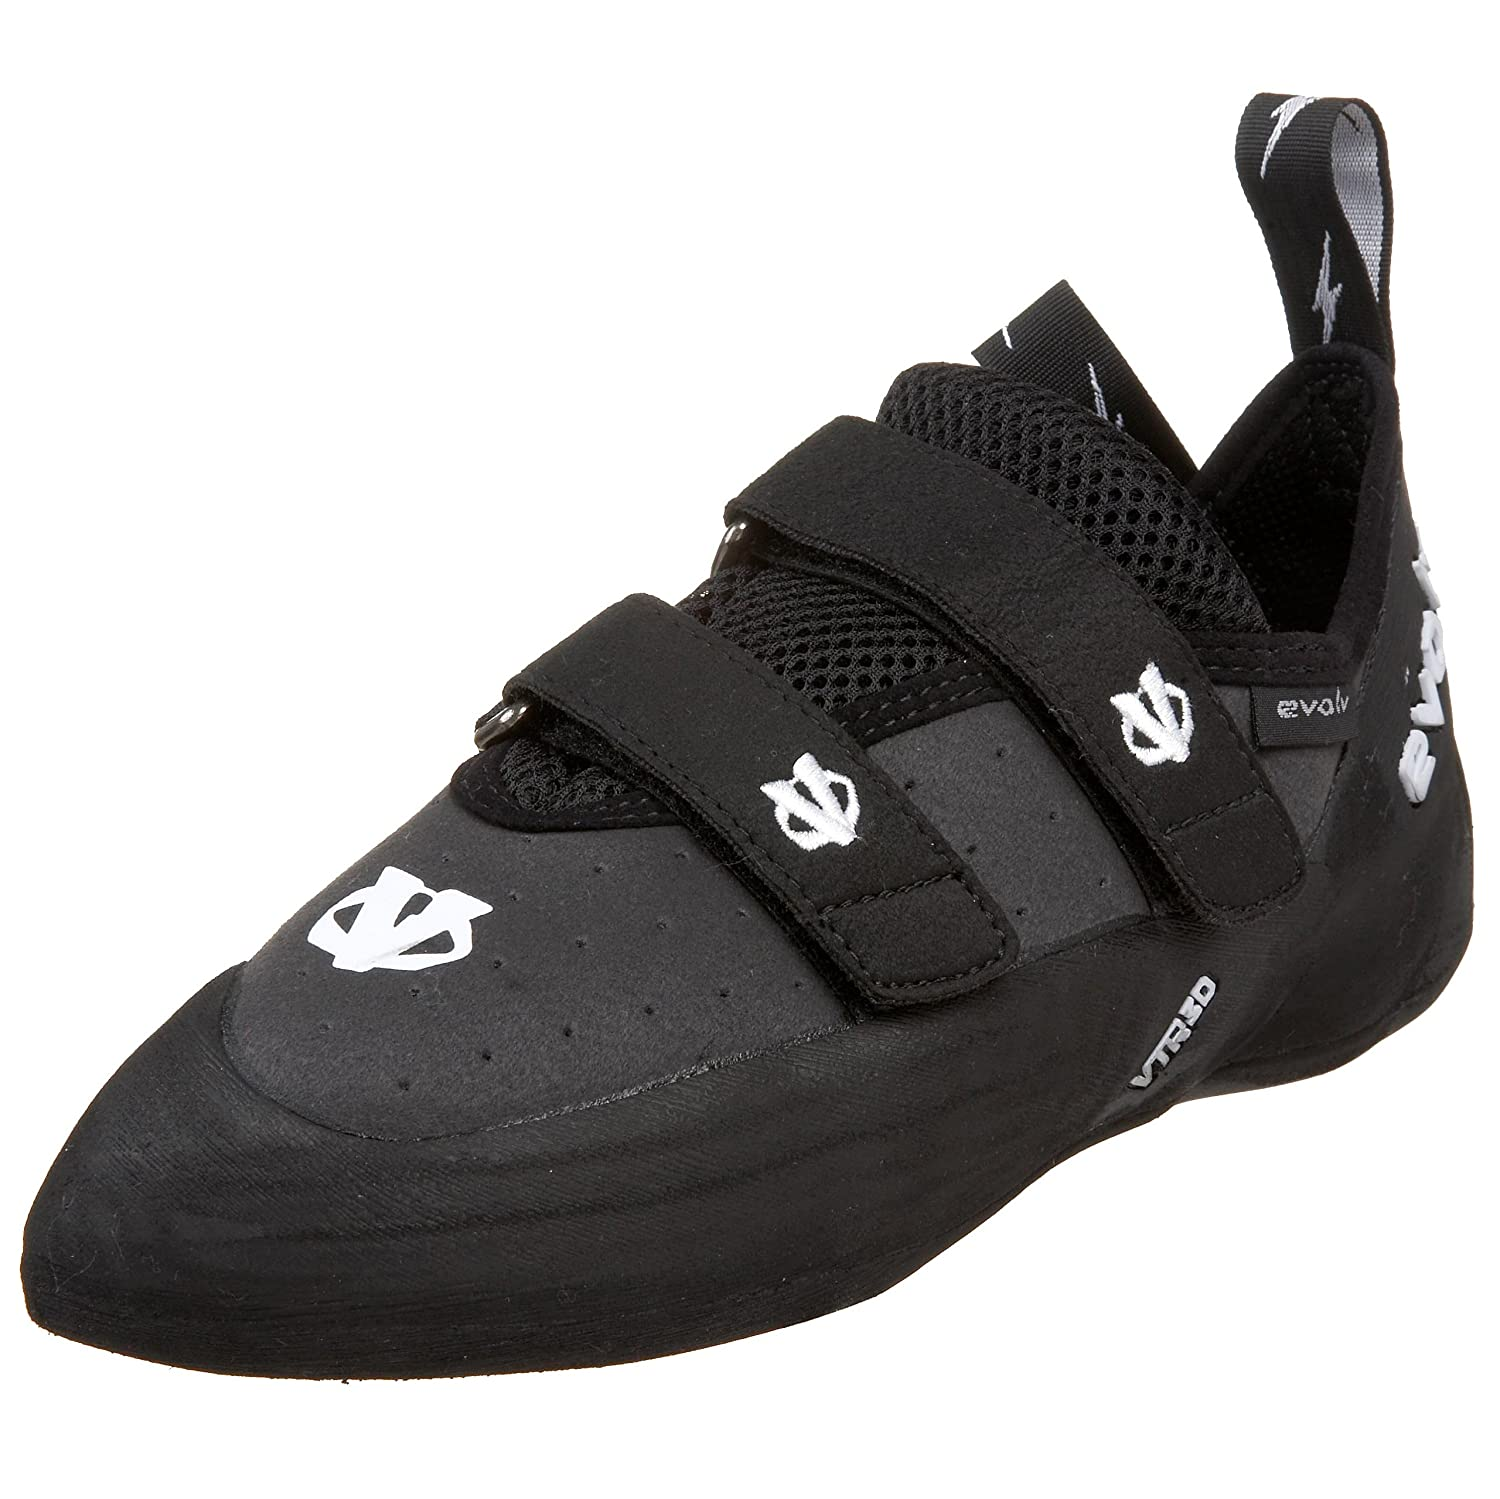 Best Shoes For Indoor Bouldering